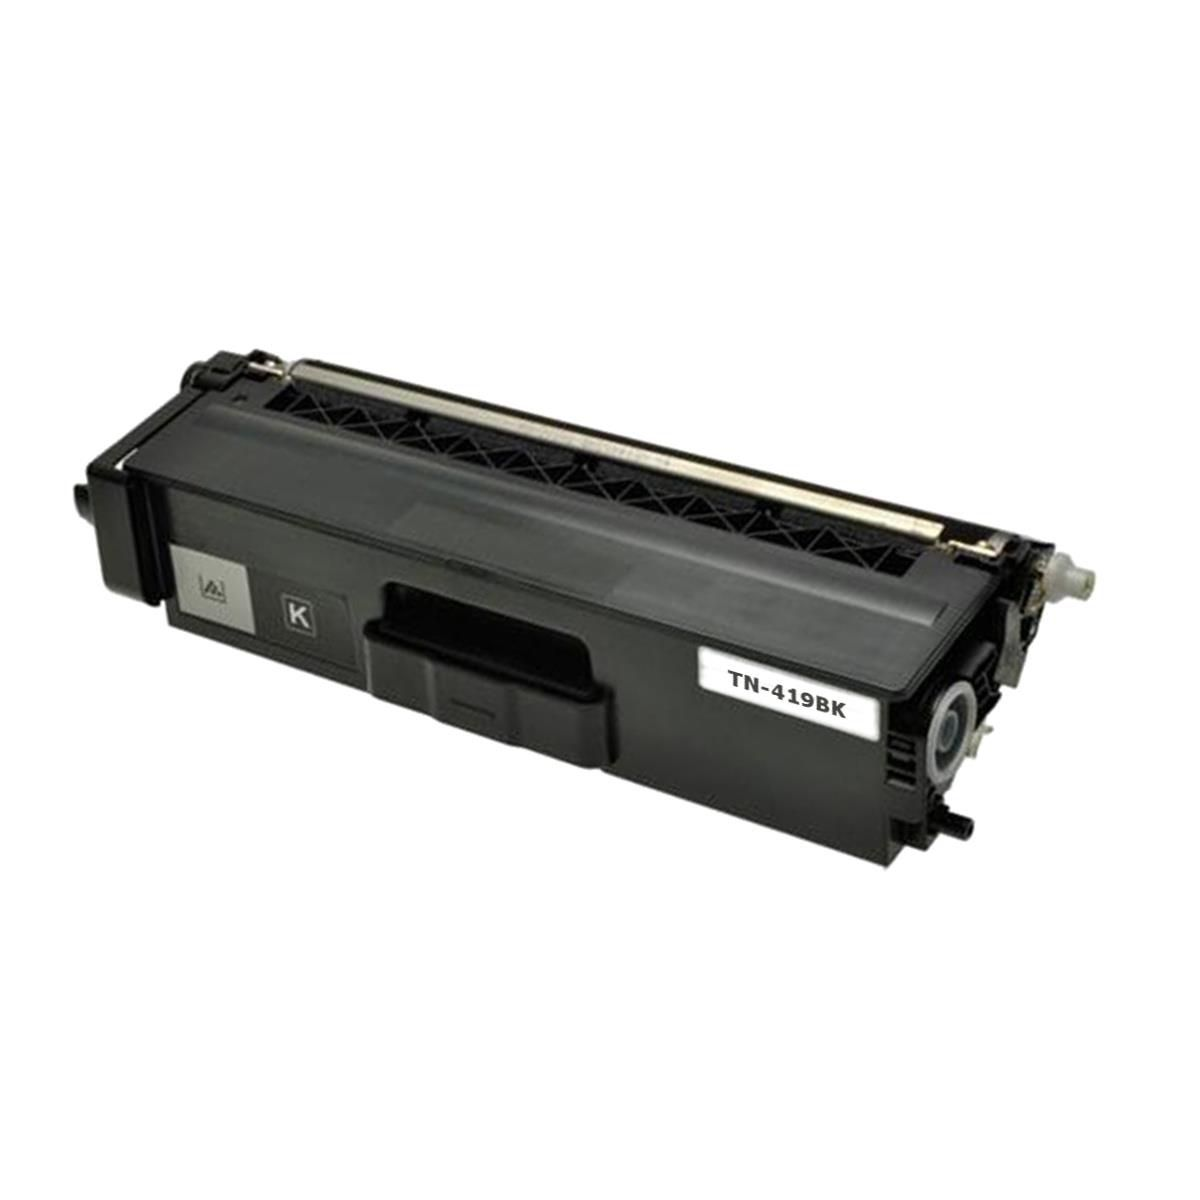 CARTUCHO BROTHER (TN419/416) HL-L8360CDW/MFC-L8610/L8900/L9570 PRETO 6,5k  (COMPATIVEL)